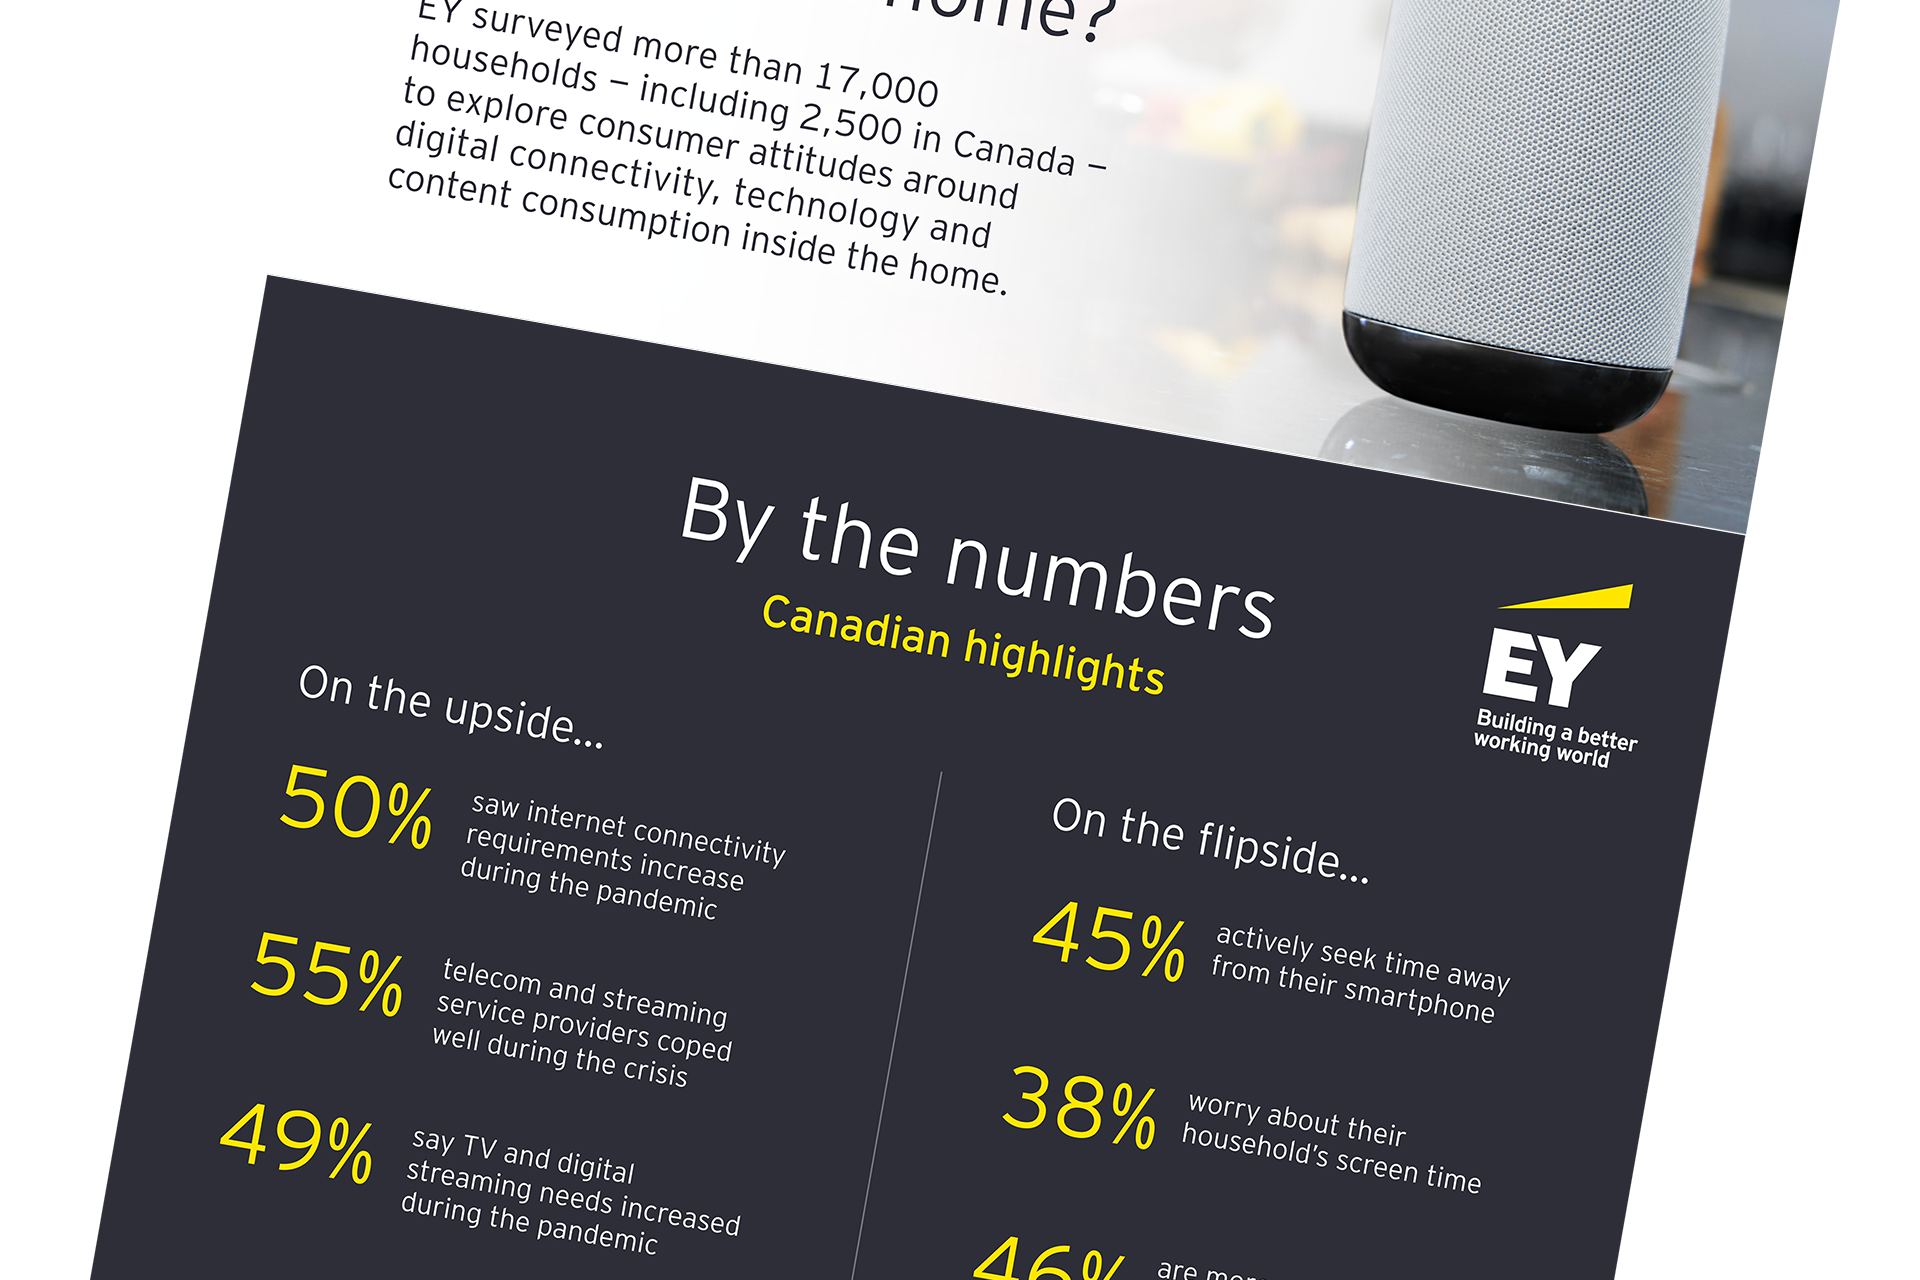 What matters most in the digital home? Infographic